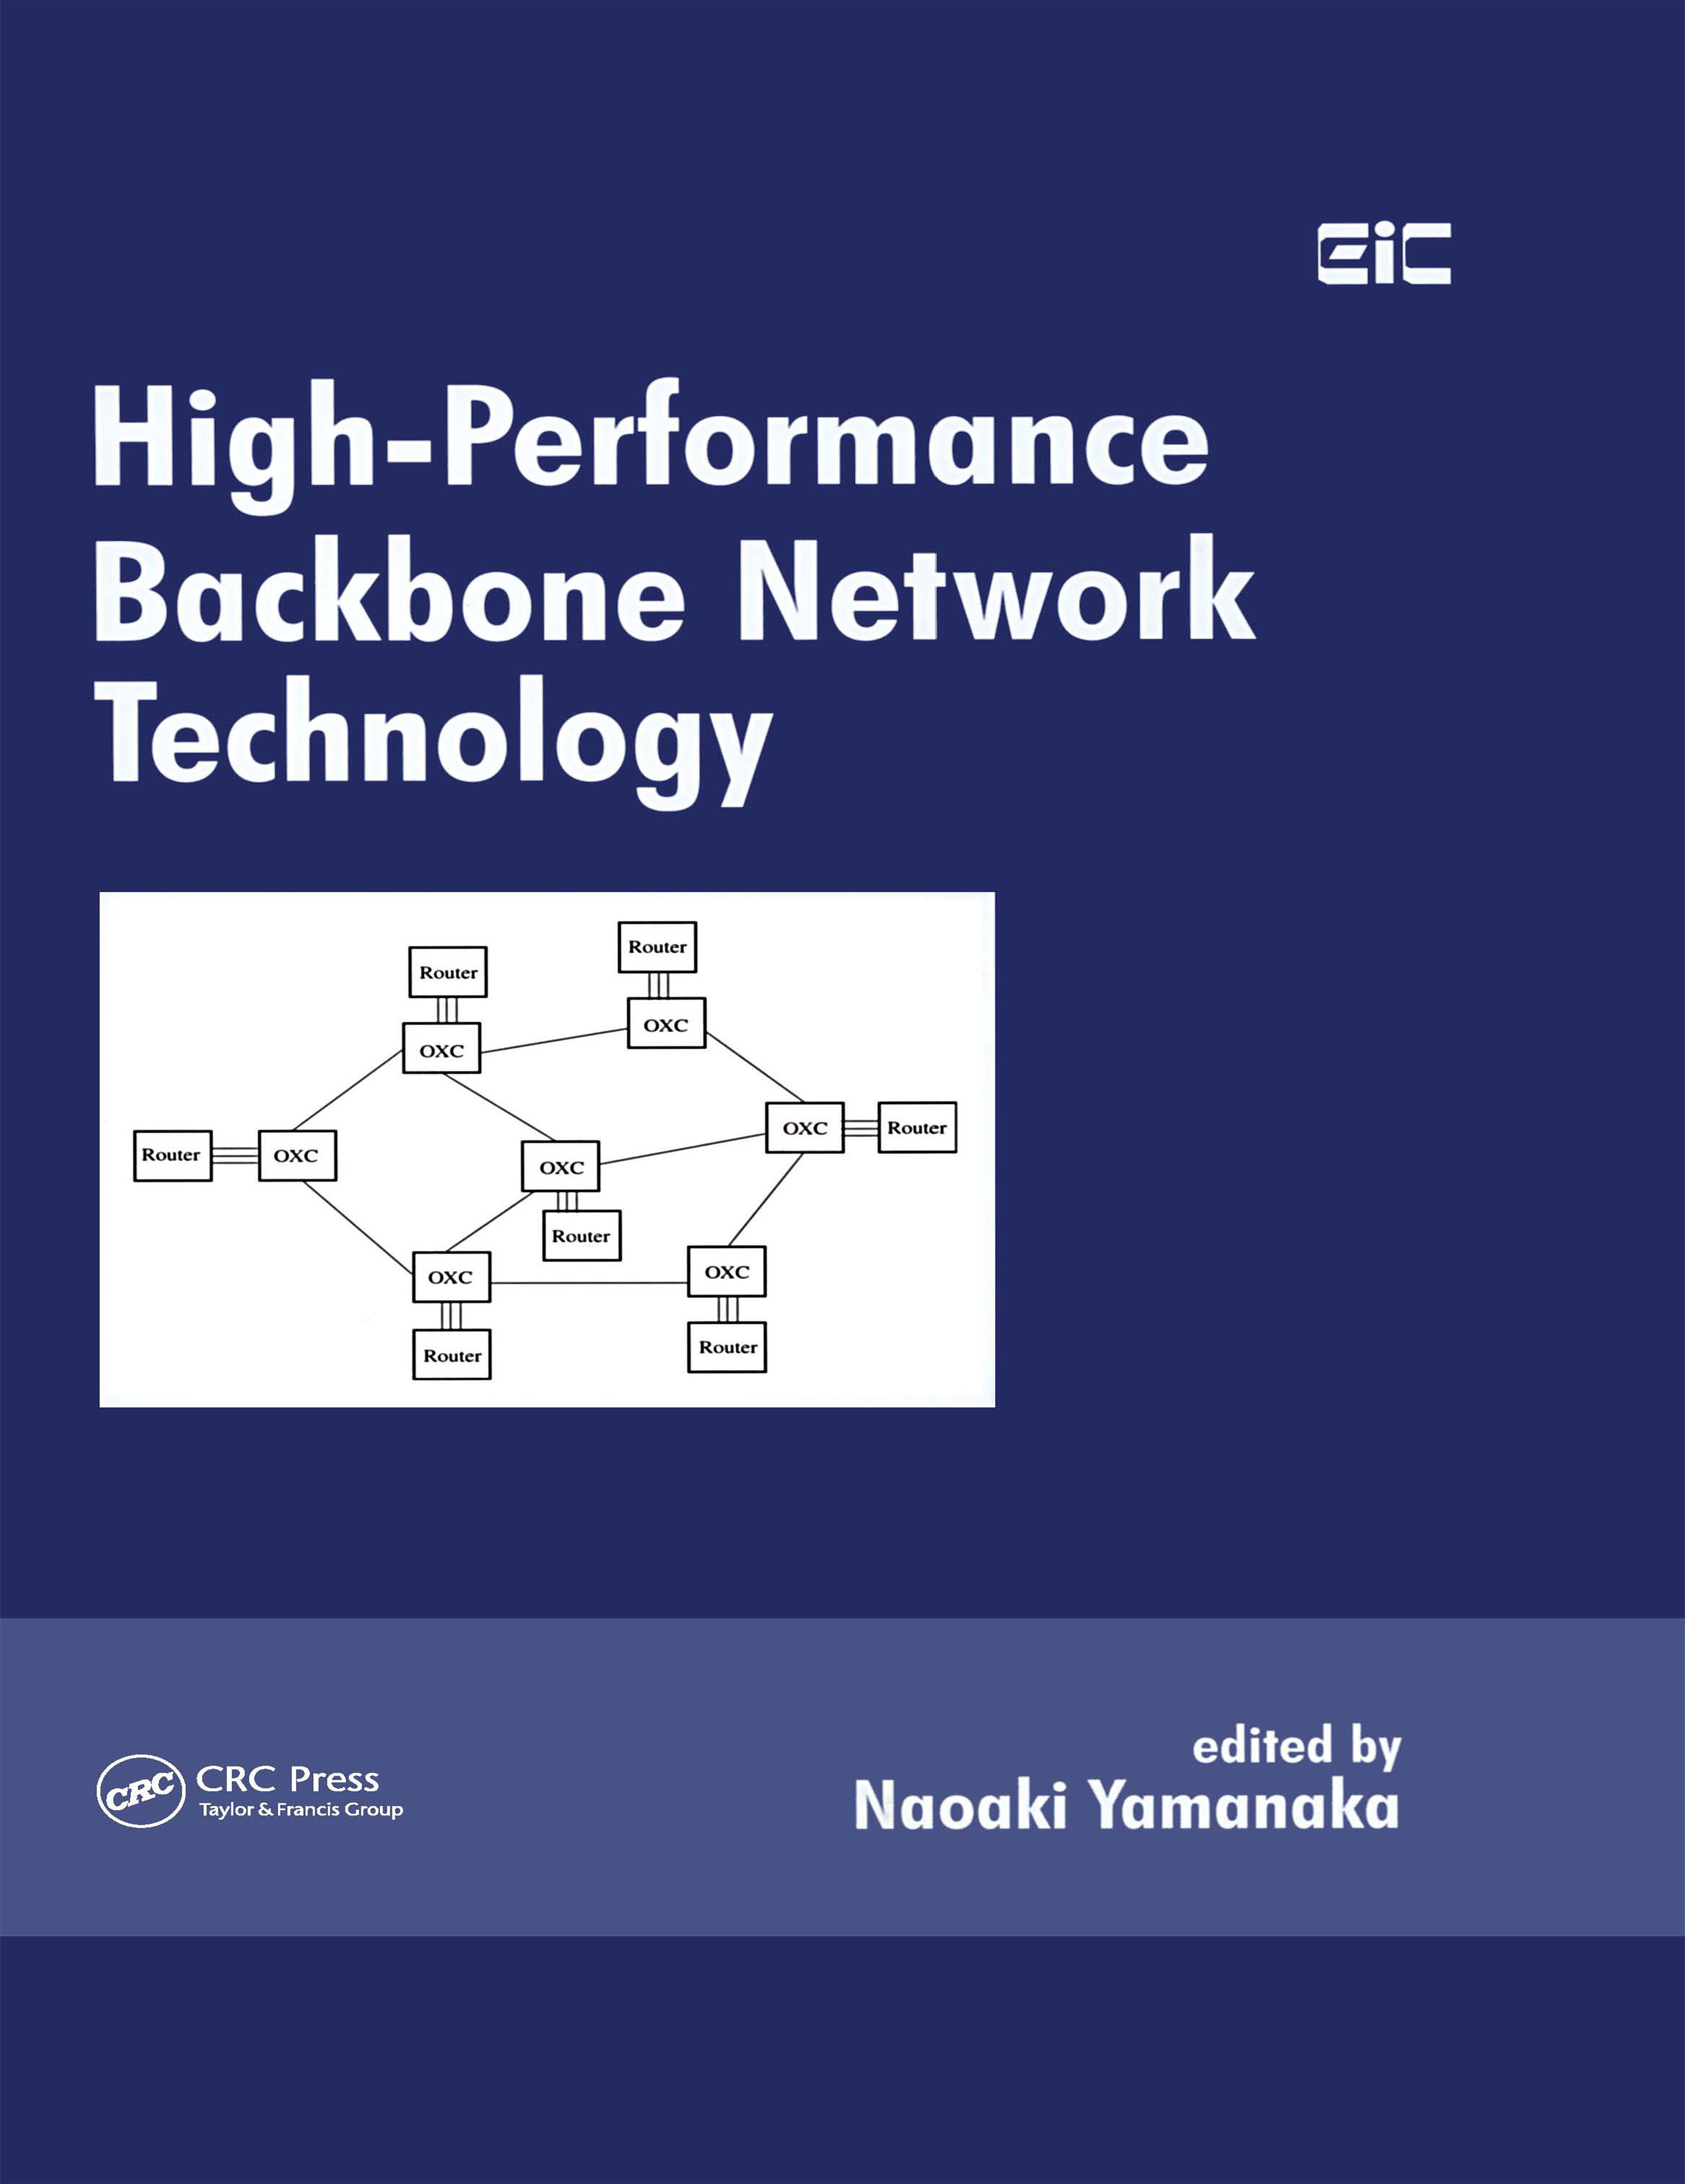 Method of Implementing GFR Service in Large-Scale Networks Using ABR Control Mechanism and Its Performance Analysis